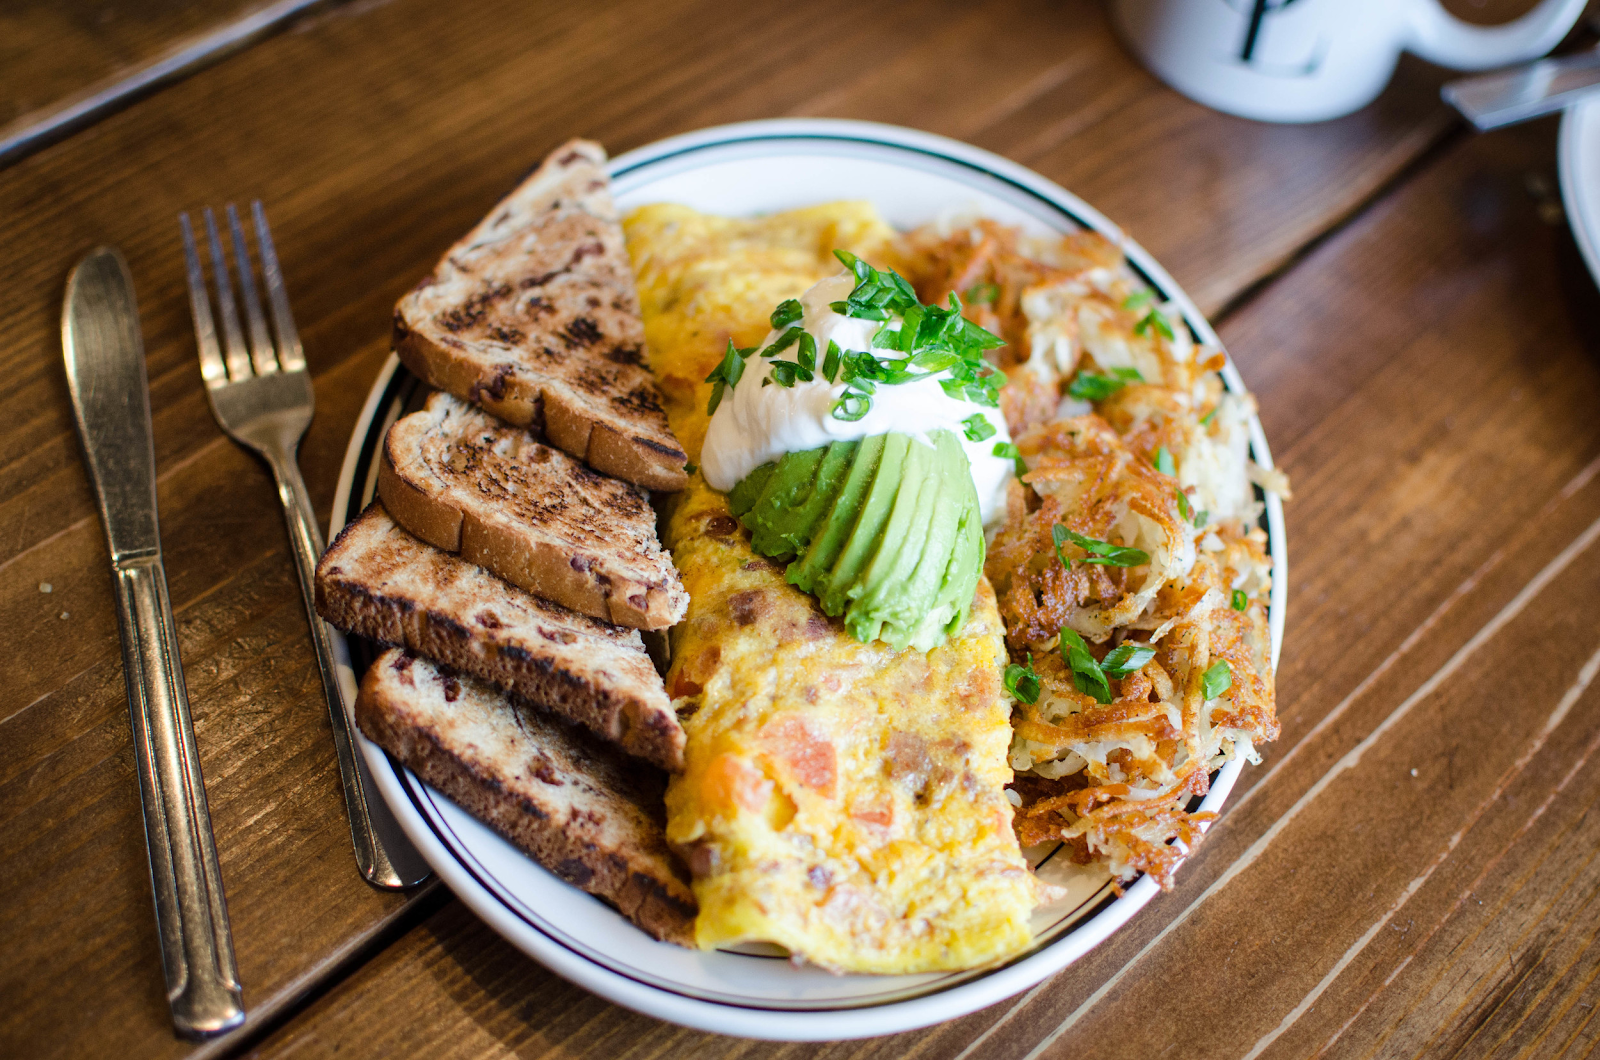 Photo of omelette and toast from South of Lane